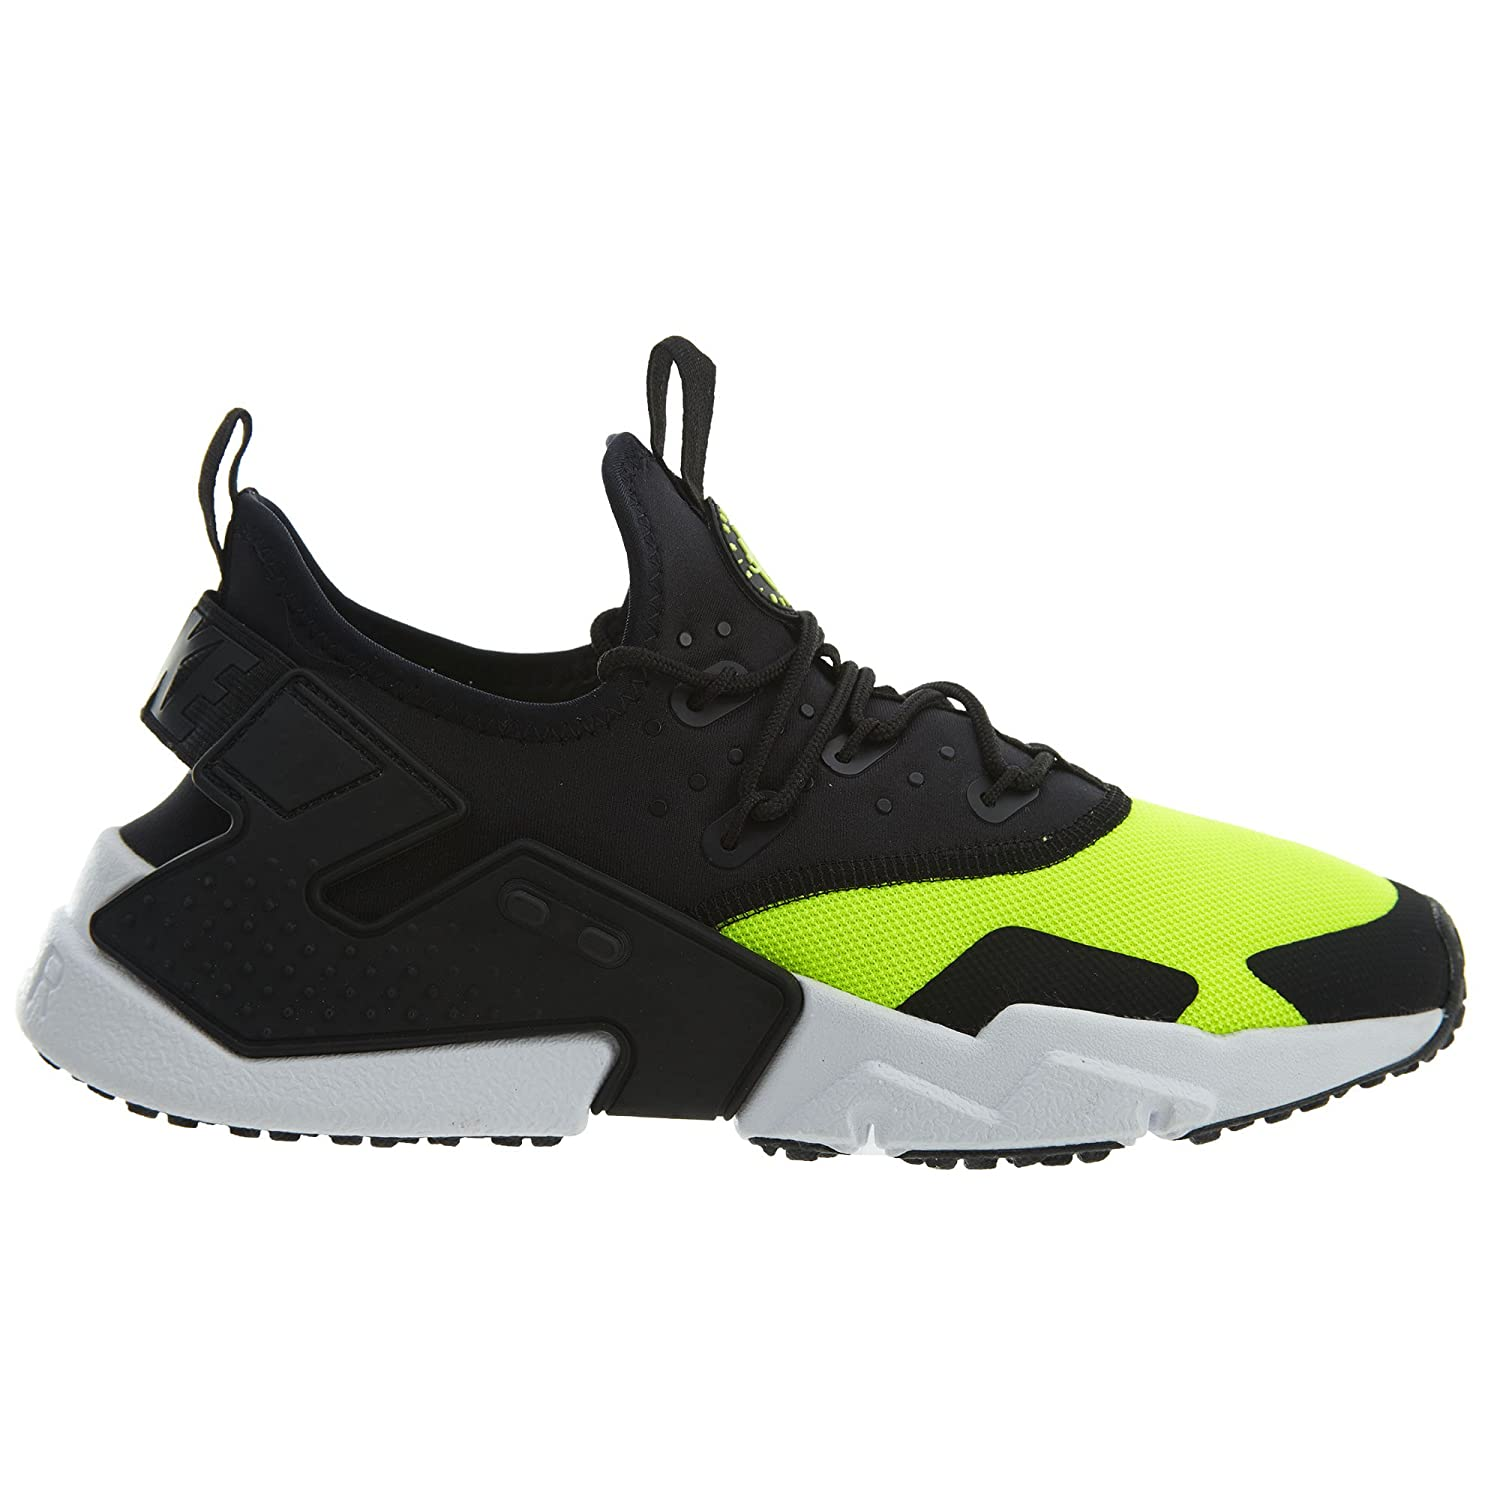 fc35a380e5b1 Nike Men s s Air Huarache Drift Fitness Shoes Black  Amazon.co.uk  Shoes    Bags